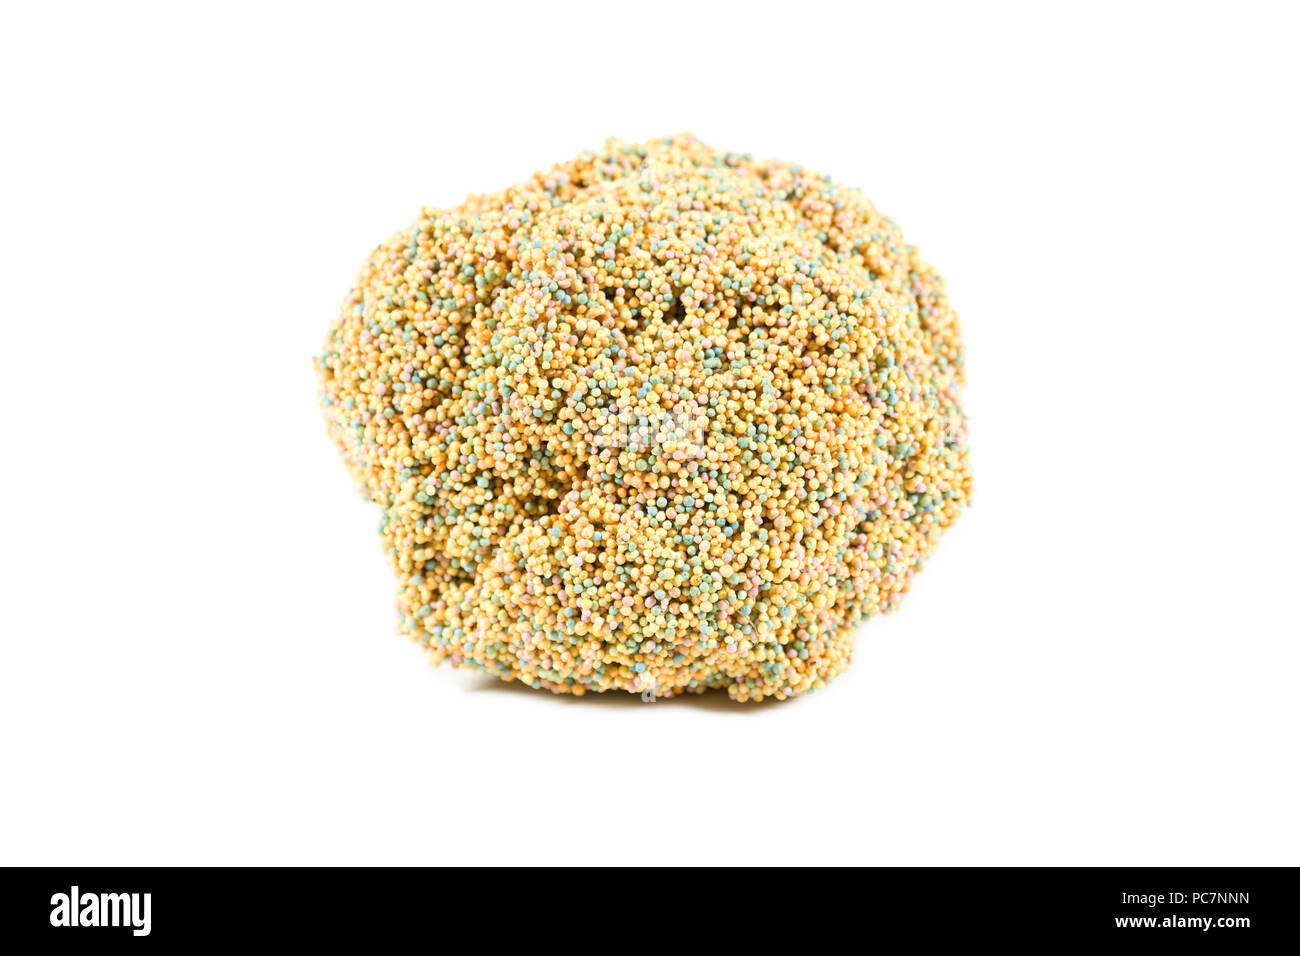 Round sculpted ball of playfoam on isolated white background - Stock Image